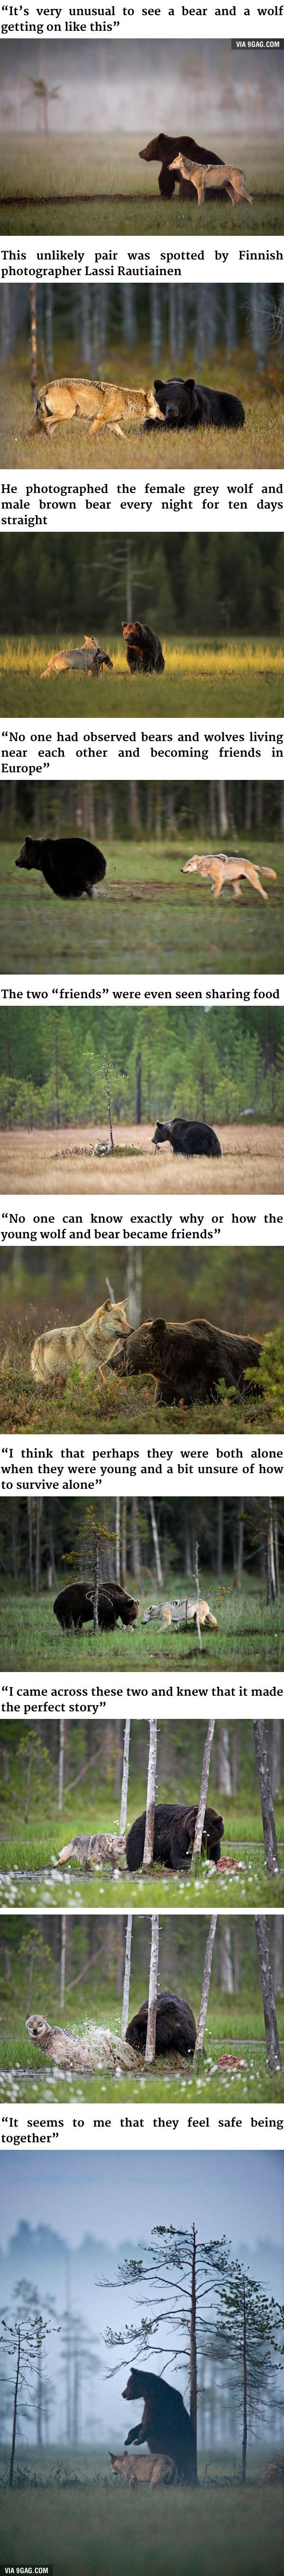 This animal relationship proves how important contact and companionship are - to us all!